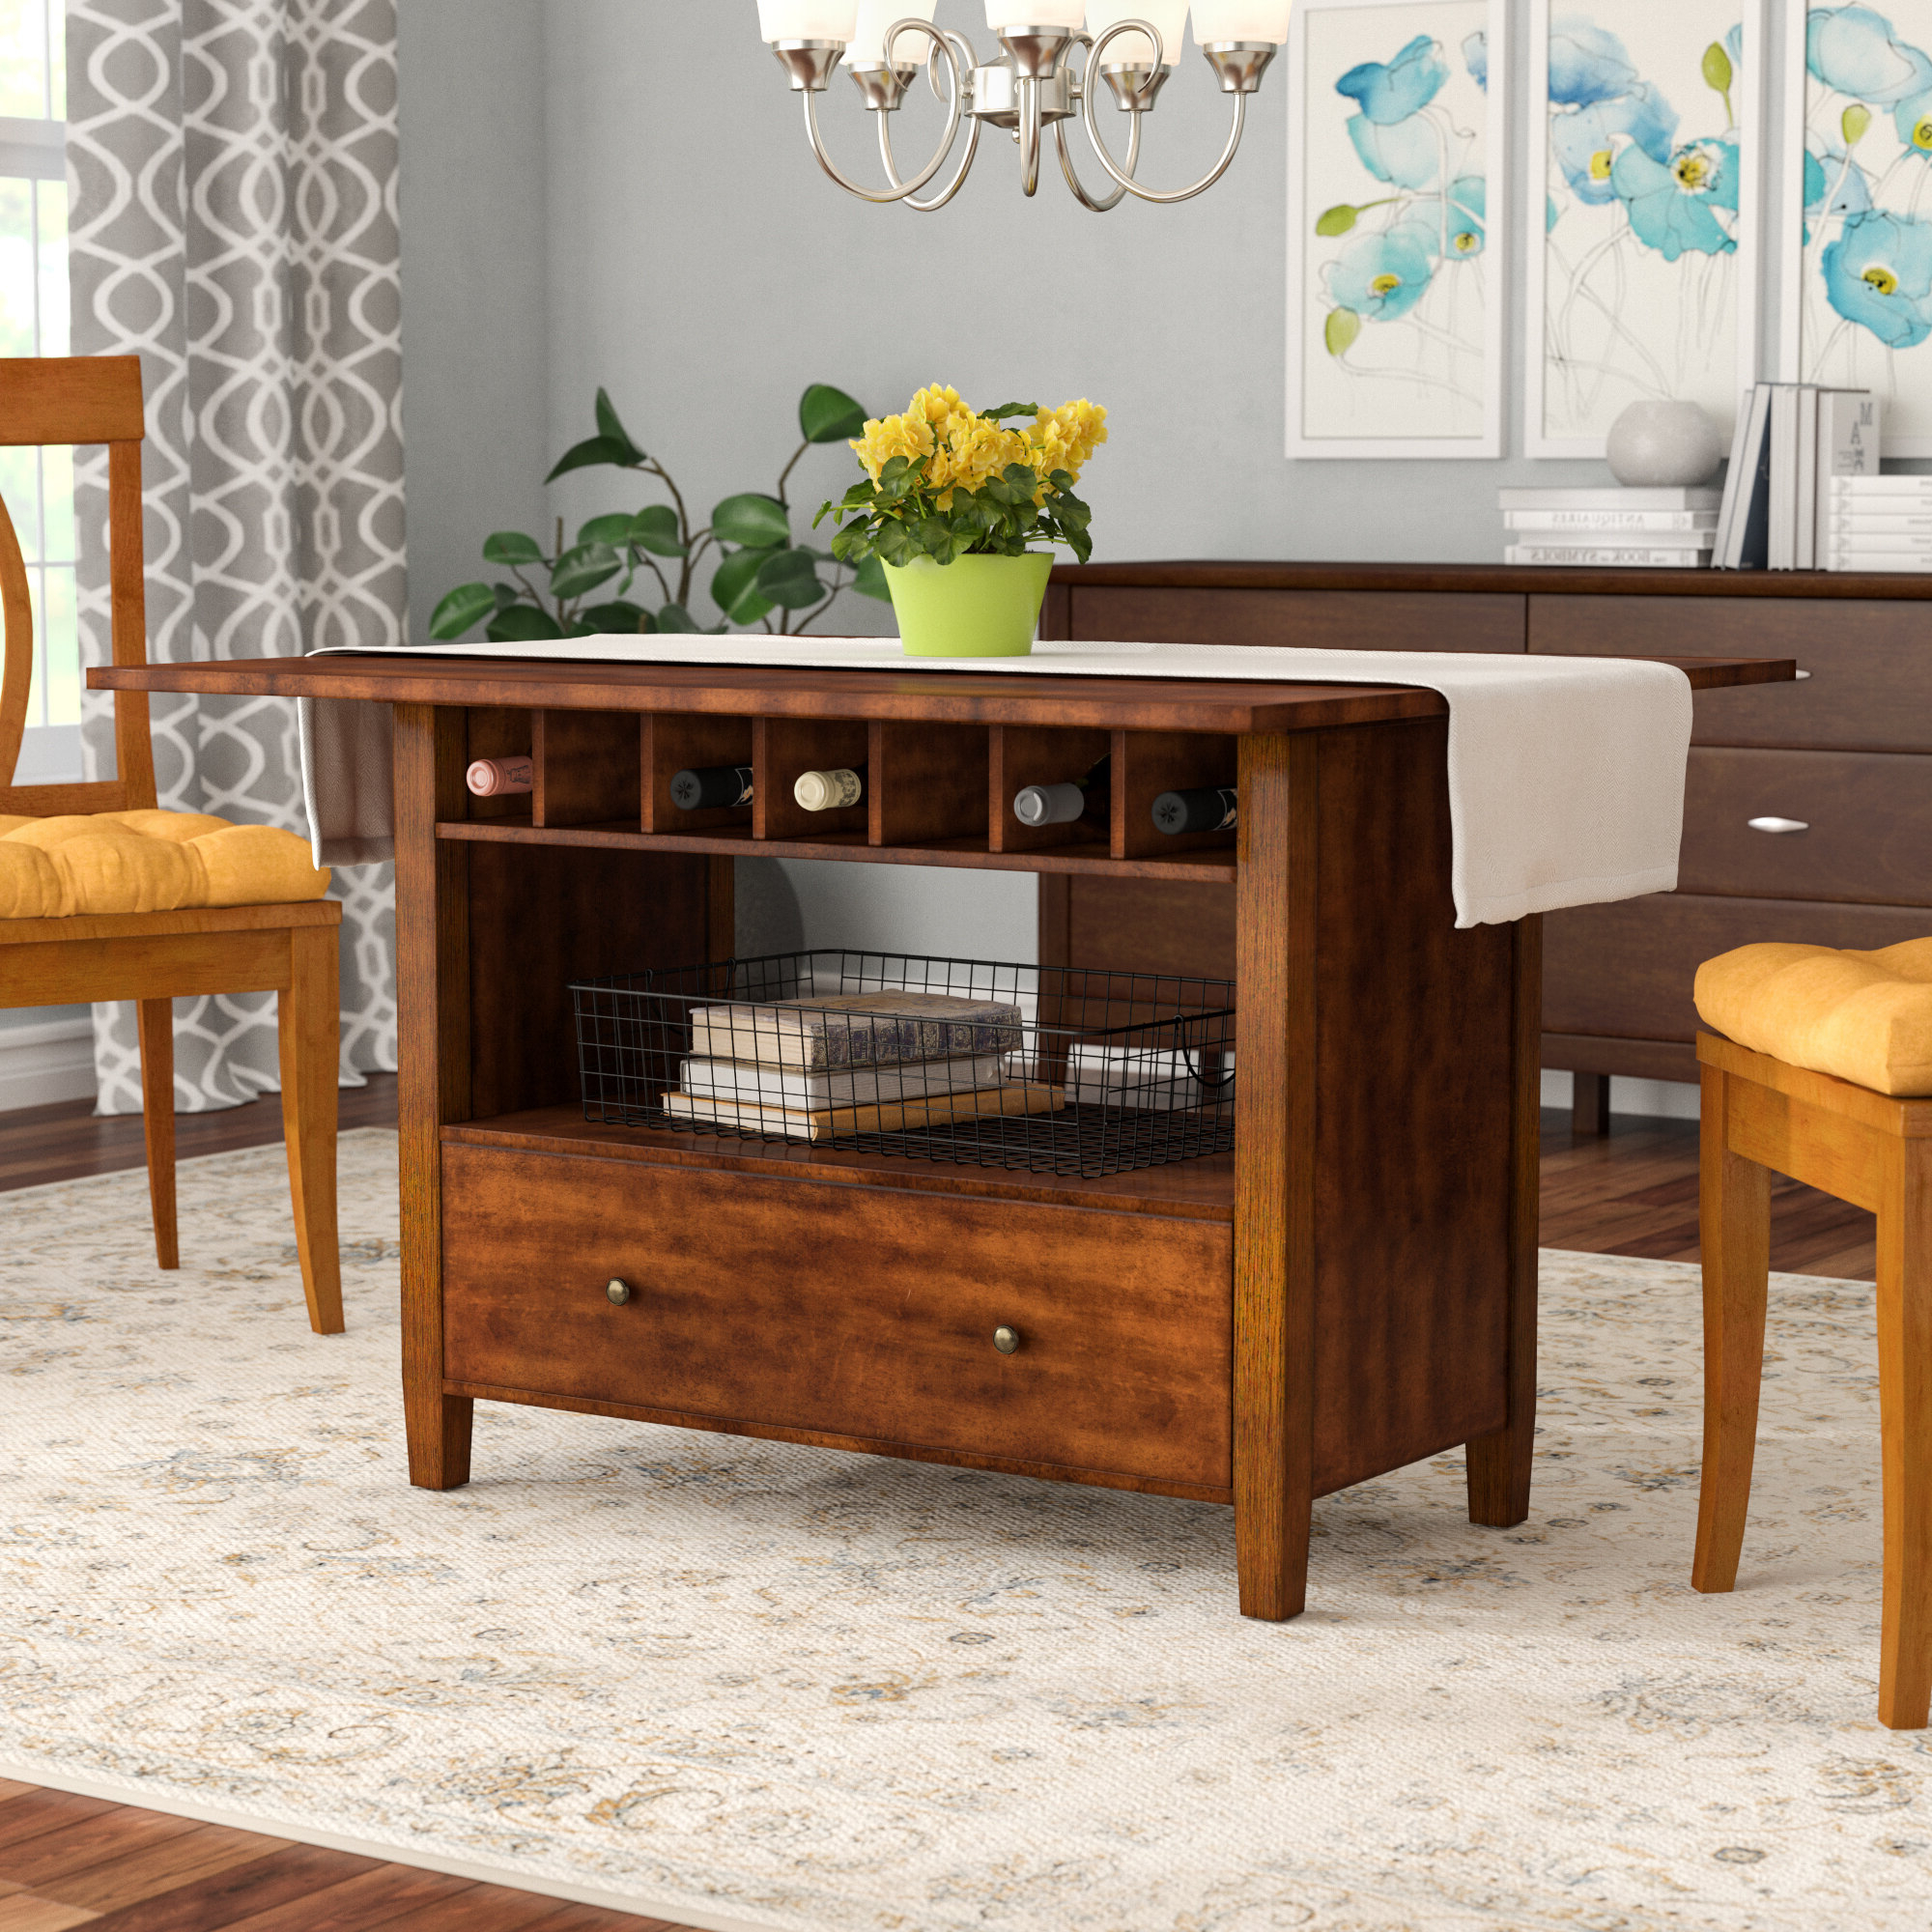 Wayfair In Most Popular Transitional 4 Seating Drop Leaf Casual Dining Tables (View 24 of 25)